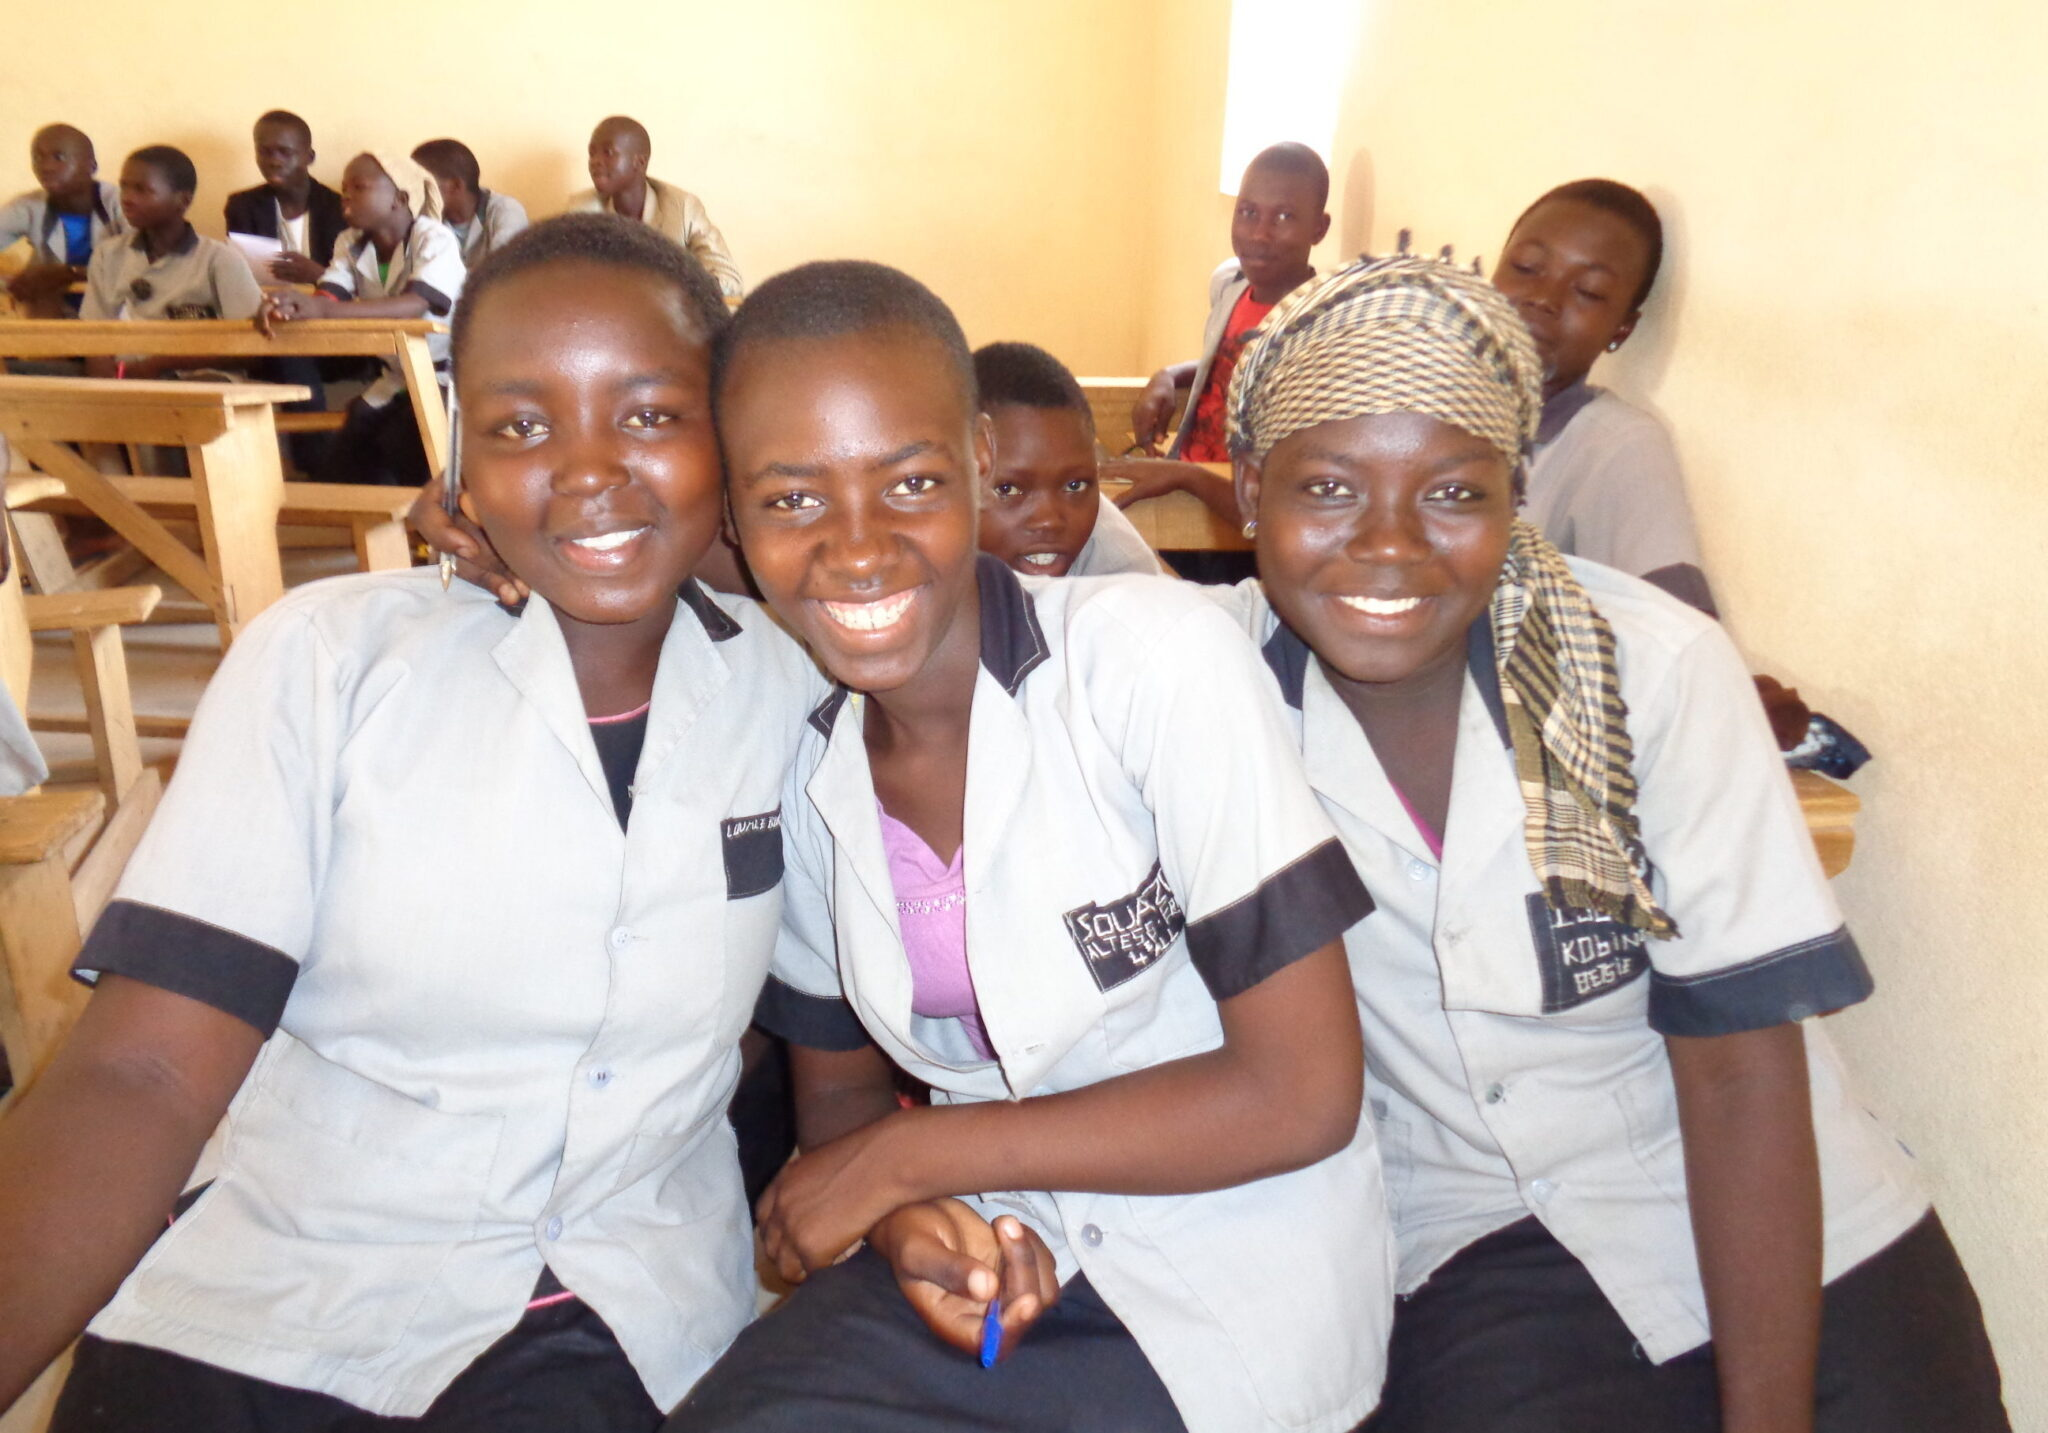 A group of students sitting together and smiling